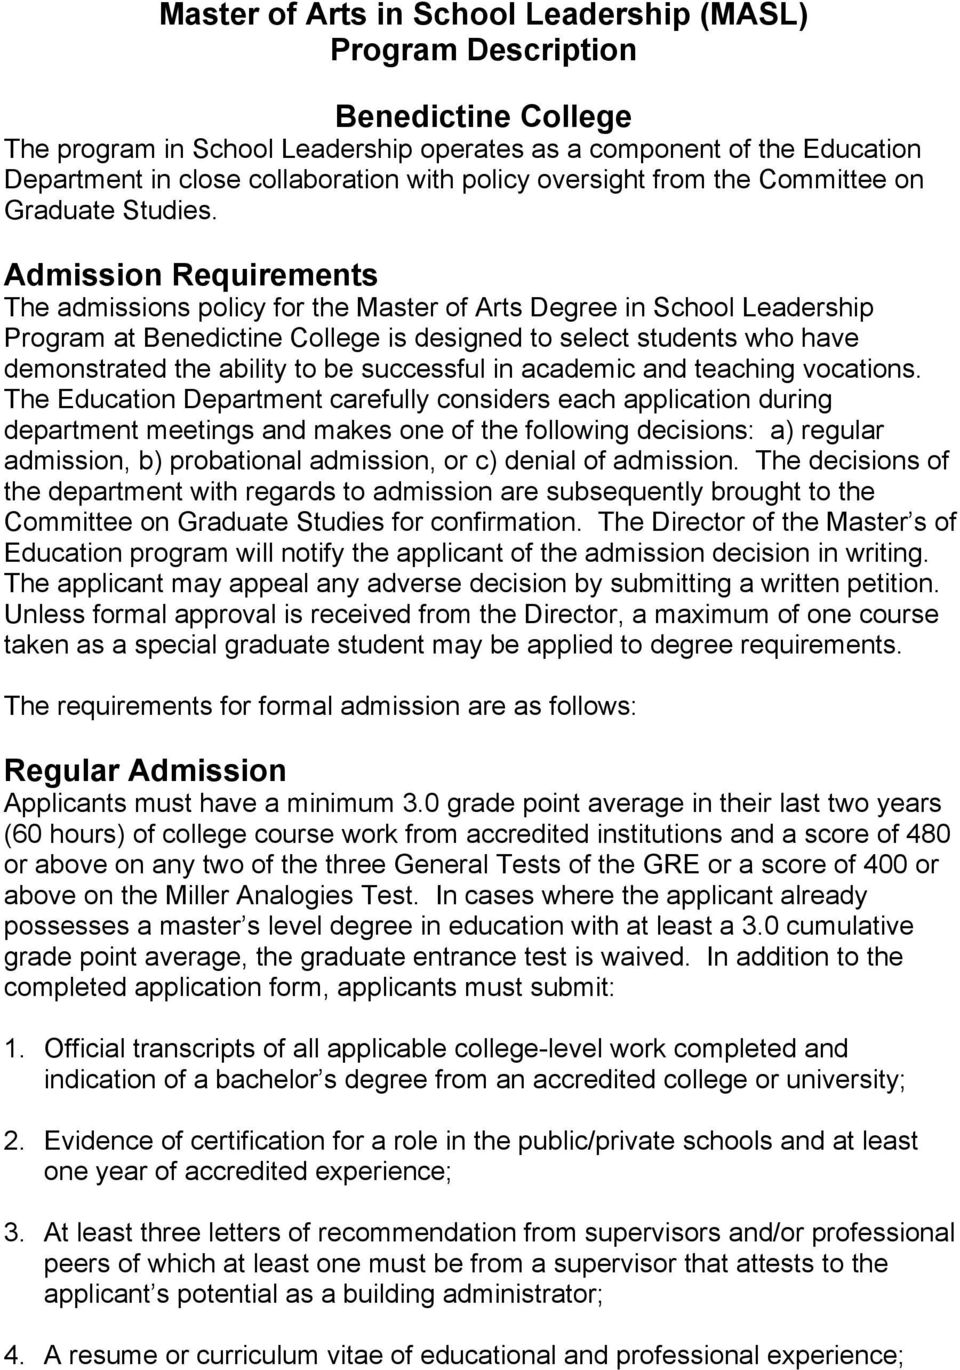 Admission Requirements The admissions policy for the Master of Arts Degree in School Leadership Program at Benedictine College is designed to select students who have demonstrated the ability to be